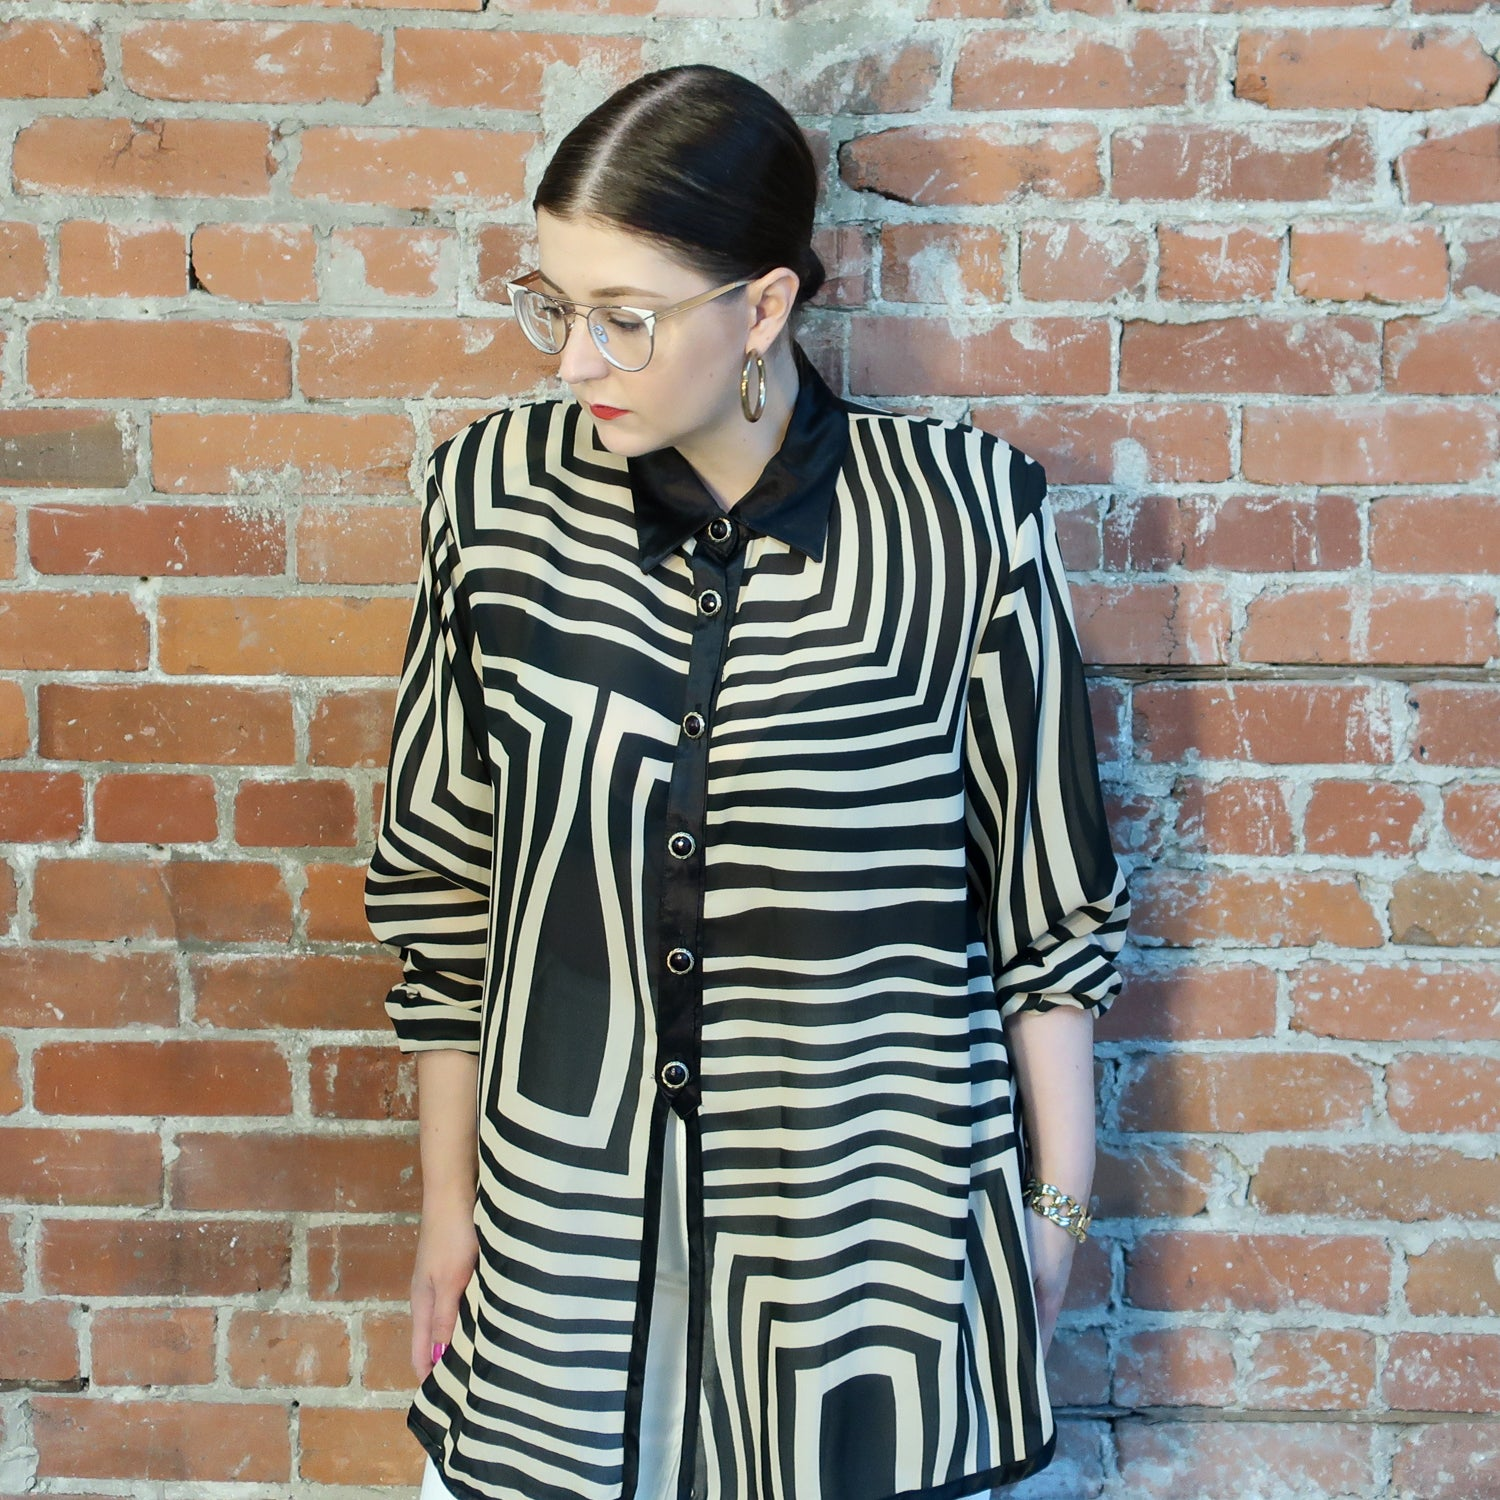 "Second Room Vintage Clothing. Vintage long sleeve tunic style blouse, semi sheer, with beige and black striped patterns. Black satin trim on collar, front, and cuffs, and has silver and black buttons that go 20"" down the front; the bottom portion of the top is open. Free North American shipping on all orders."